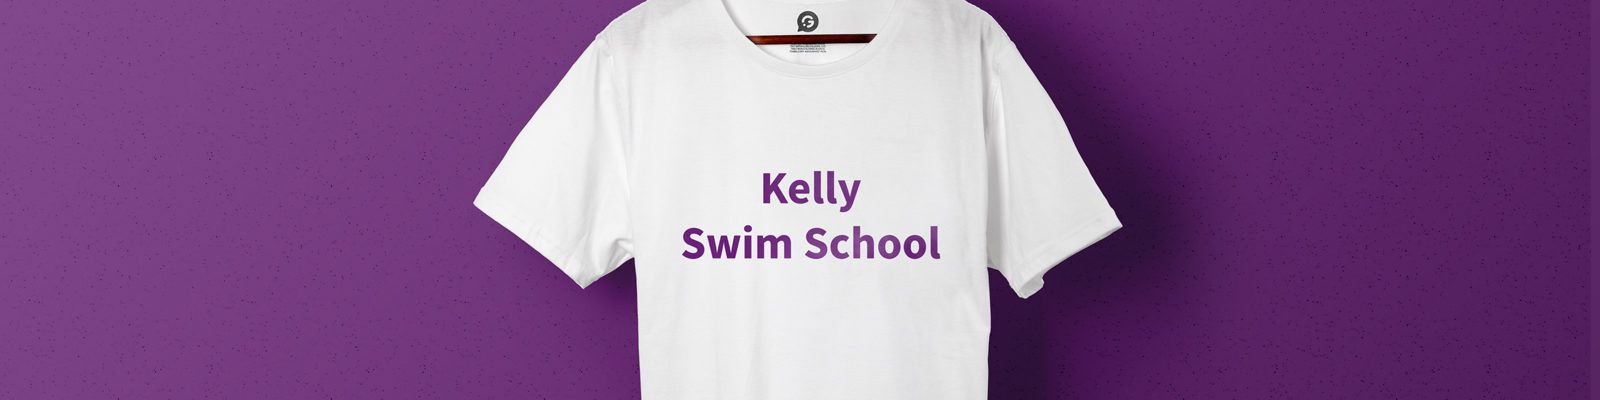 Printed School T-Shirts for Kelly's College Swim Team - Header Image